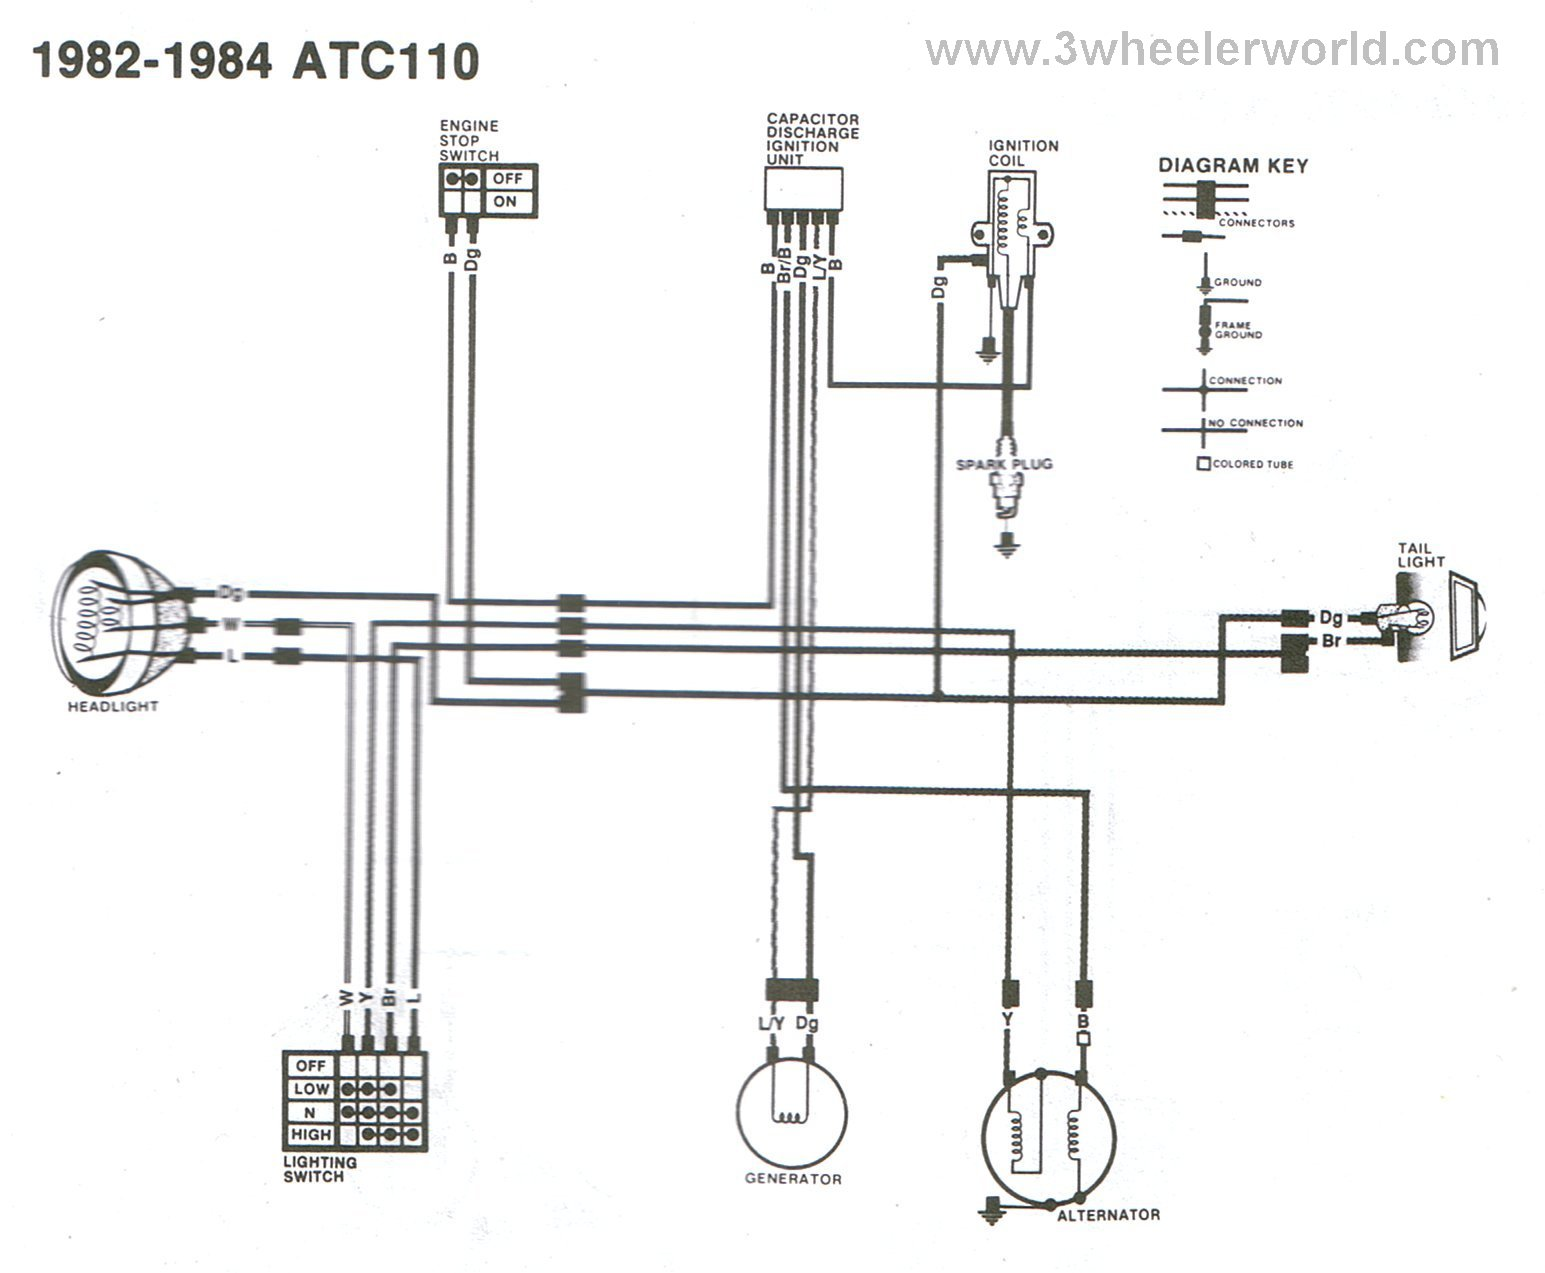 3 Wheeler World Tech Help Honda Wiring Diagrams